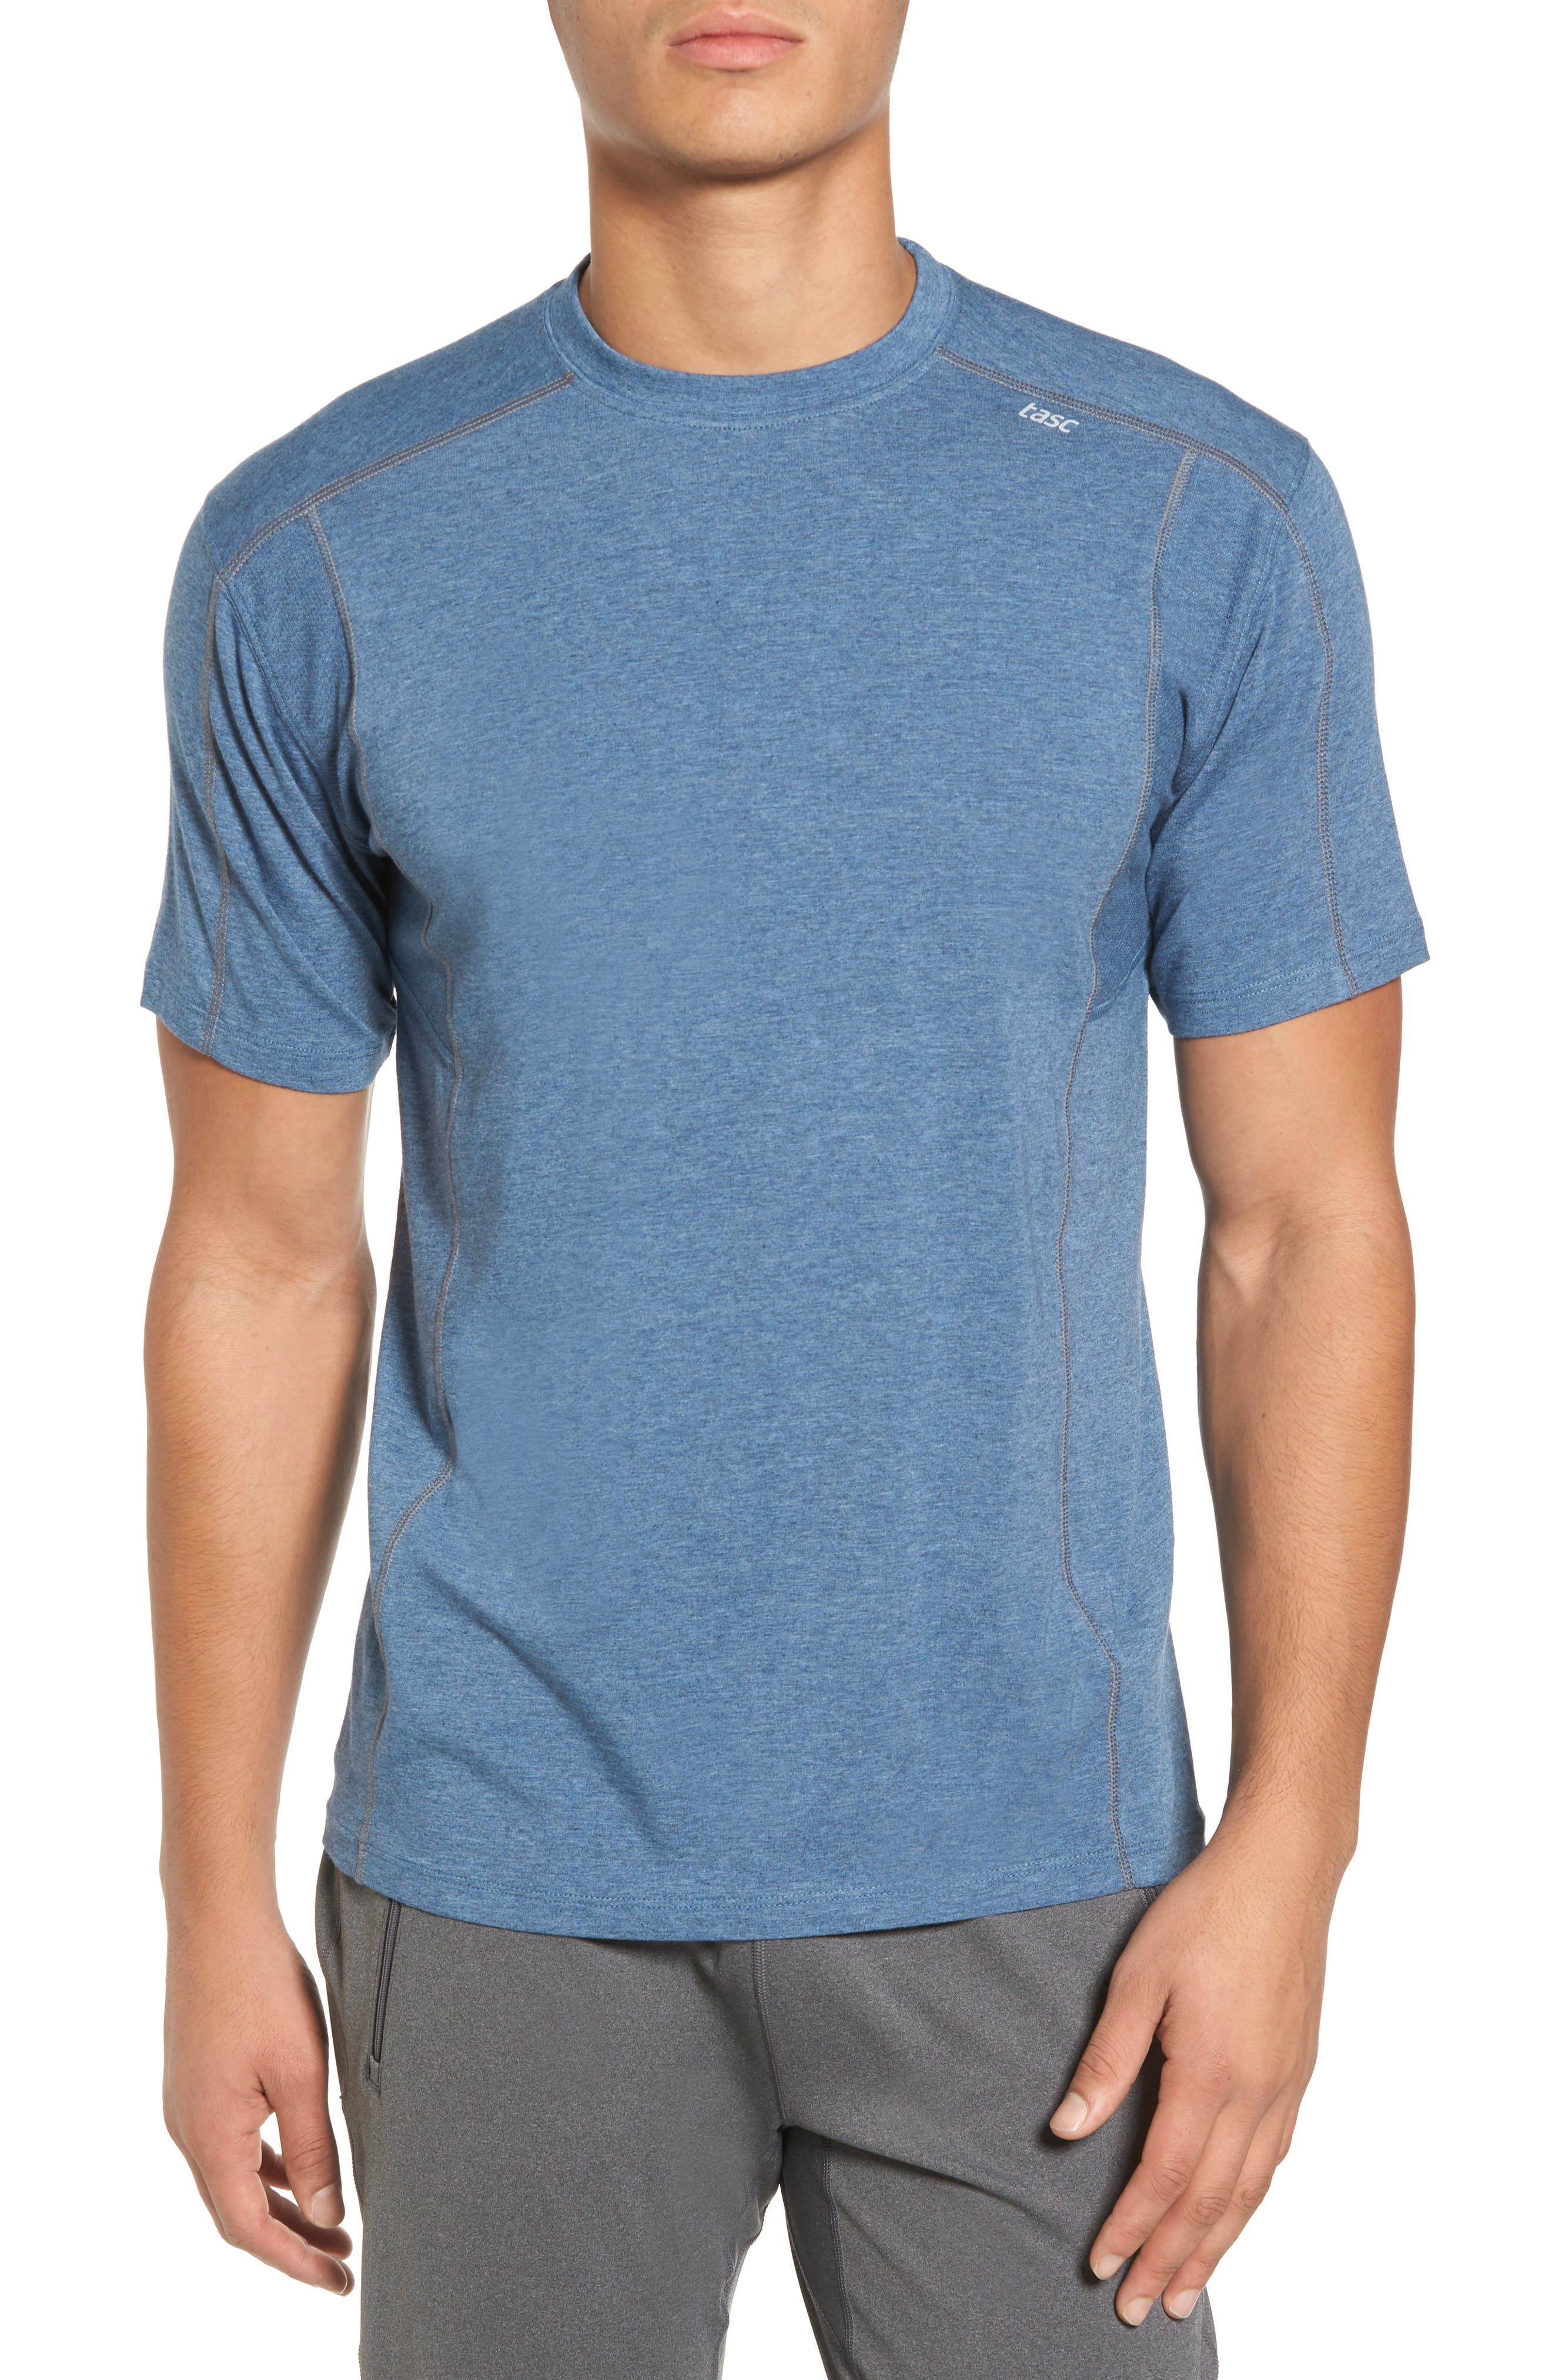 TASC PERFORMANCE Charge Semi-Fitted T-Shirt, Main, color, INDIGO HEATHER